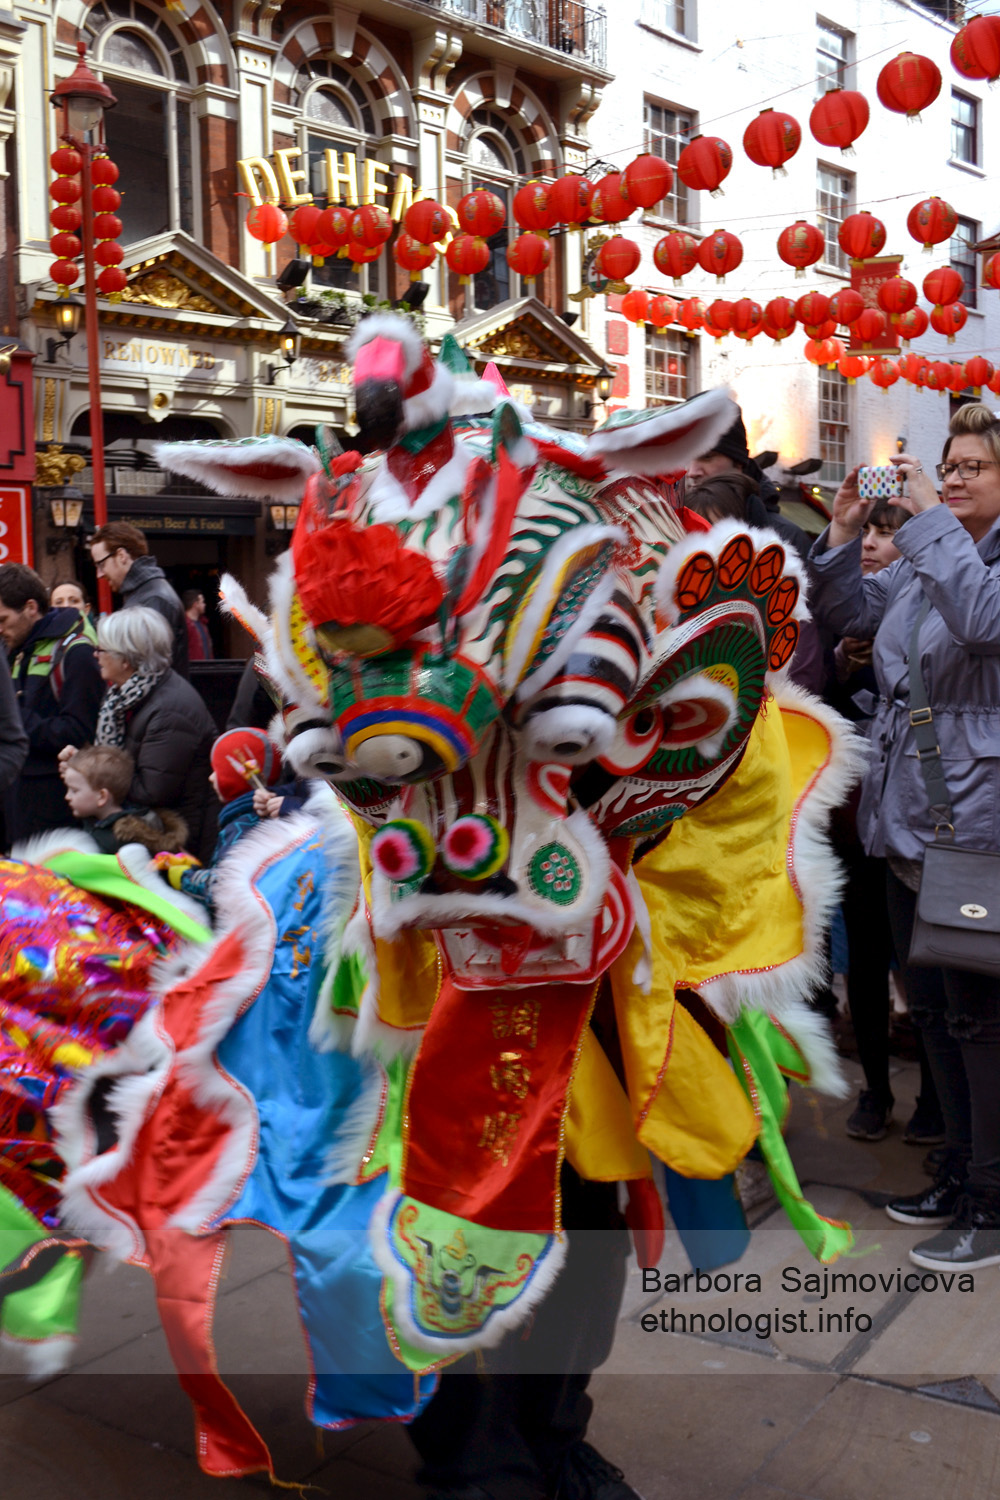 Traditional celebration of Chinese New Year in Chinatown in London. The dragon visited houses and shops, danced in front of them and wished all the best for the Chinese New Year of the Fire Monkey. Photo: Barbora Sajmovicova, 2016, London.